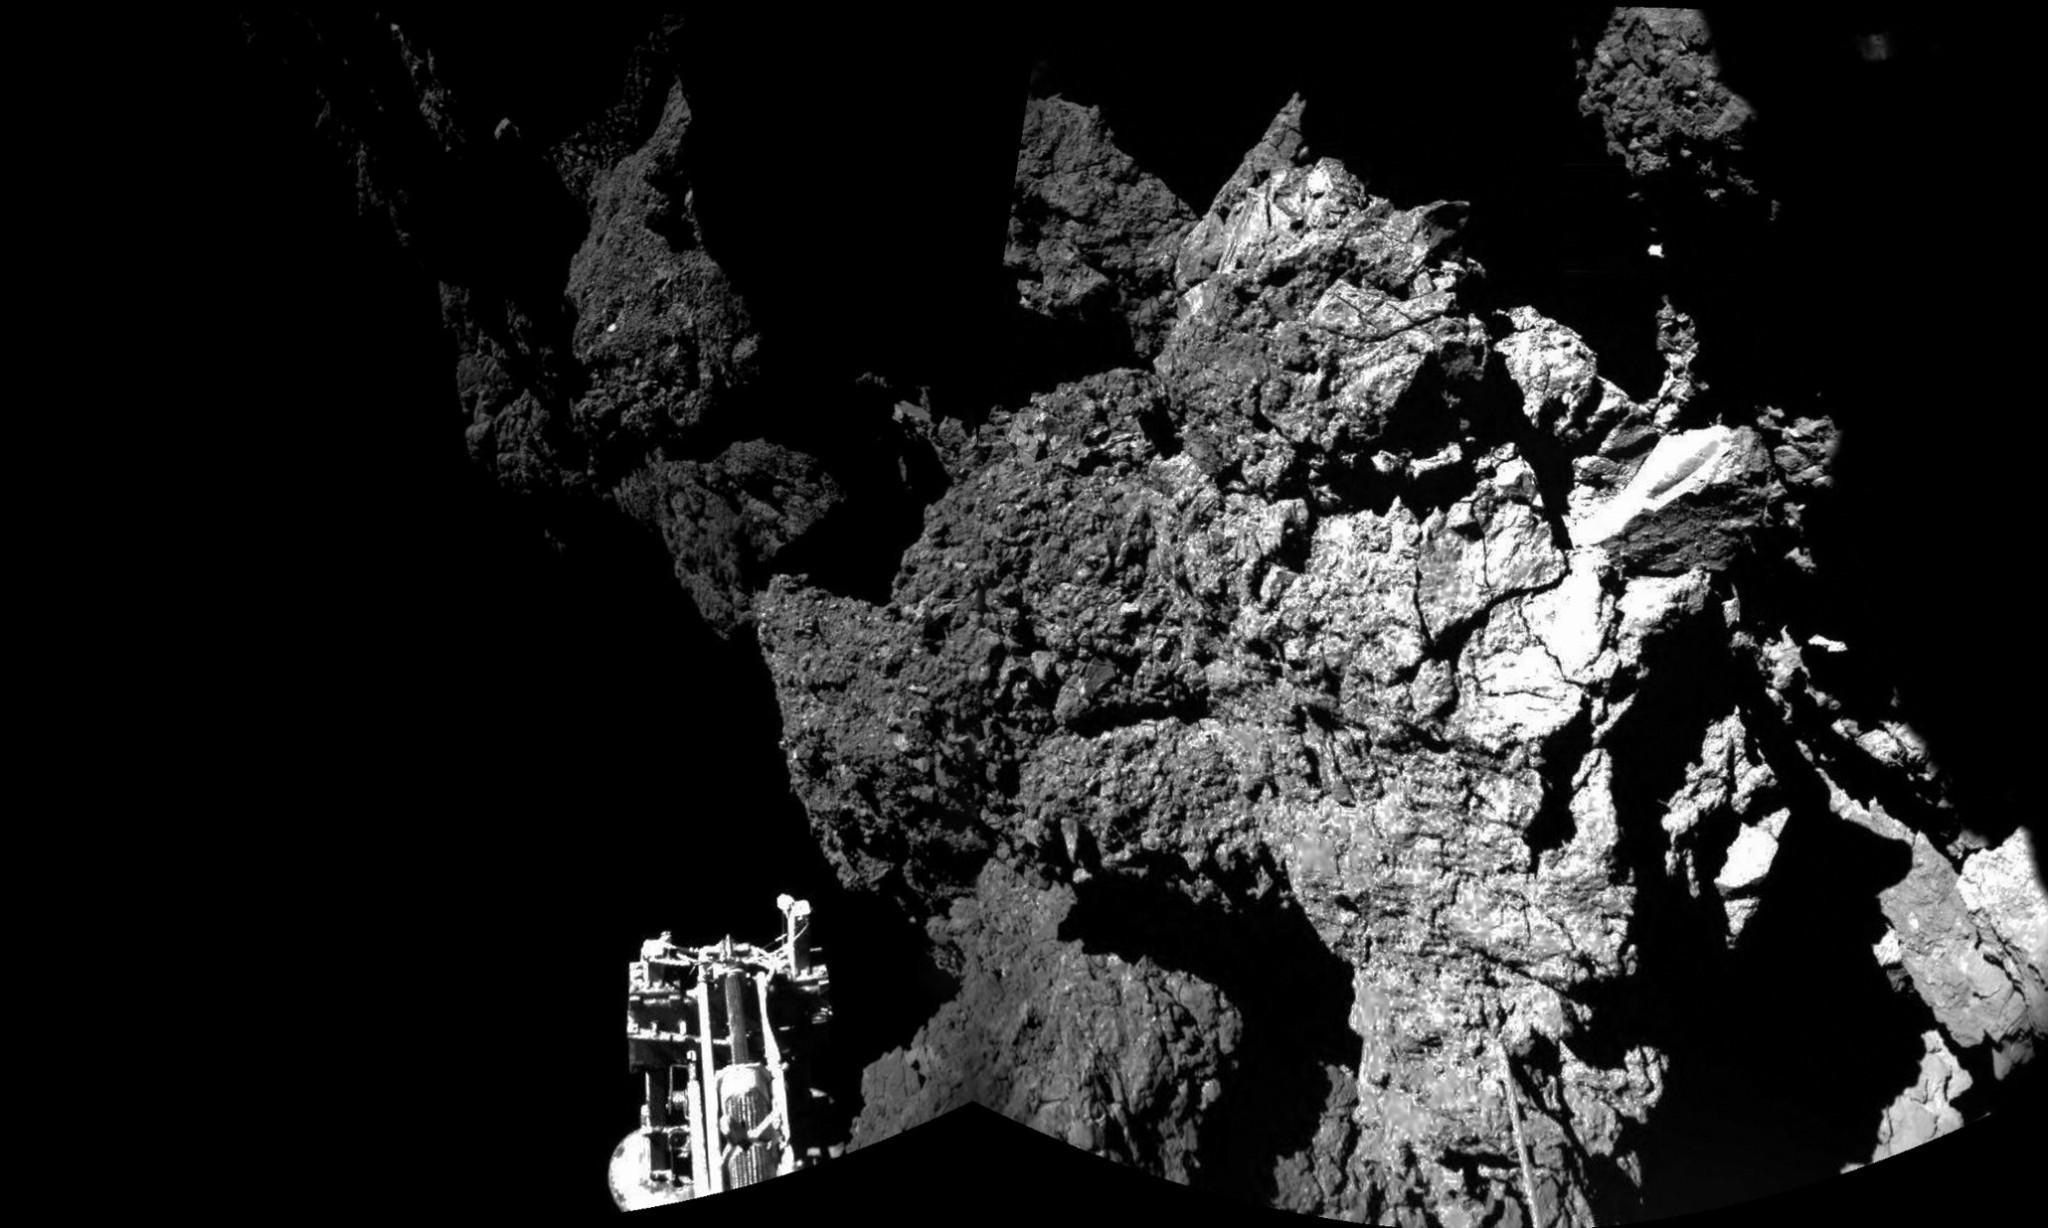 Rosetta mission's Philae lander powers down in comet's darkness